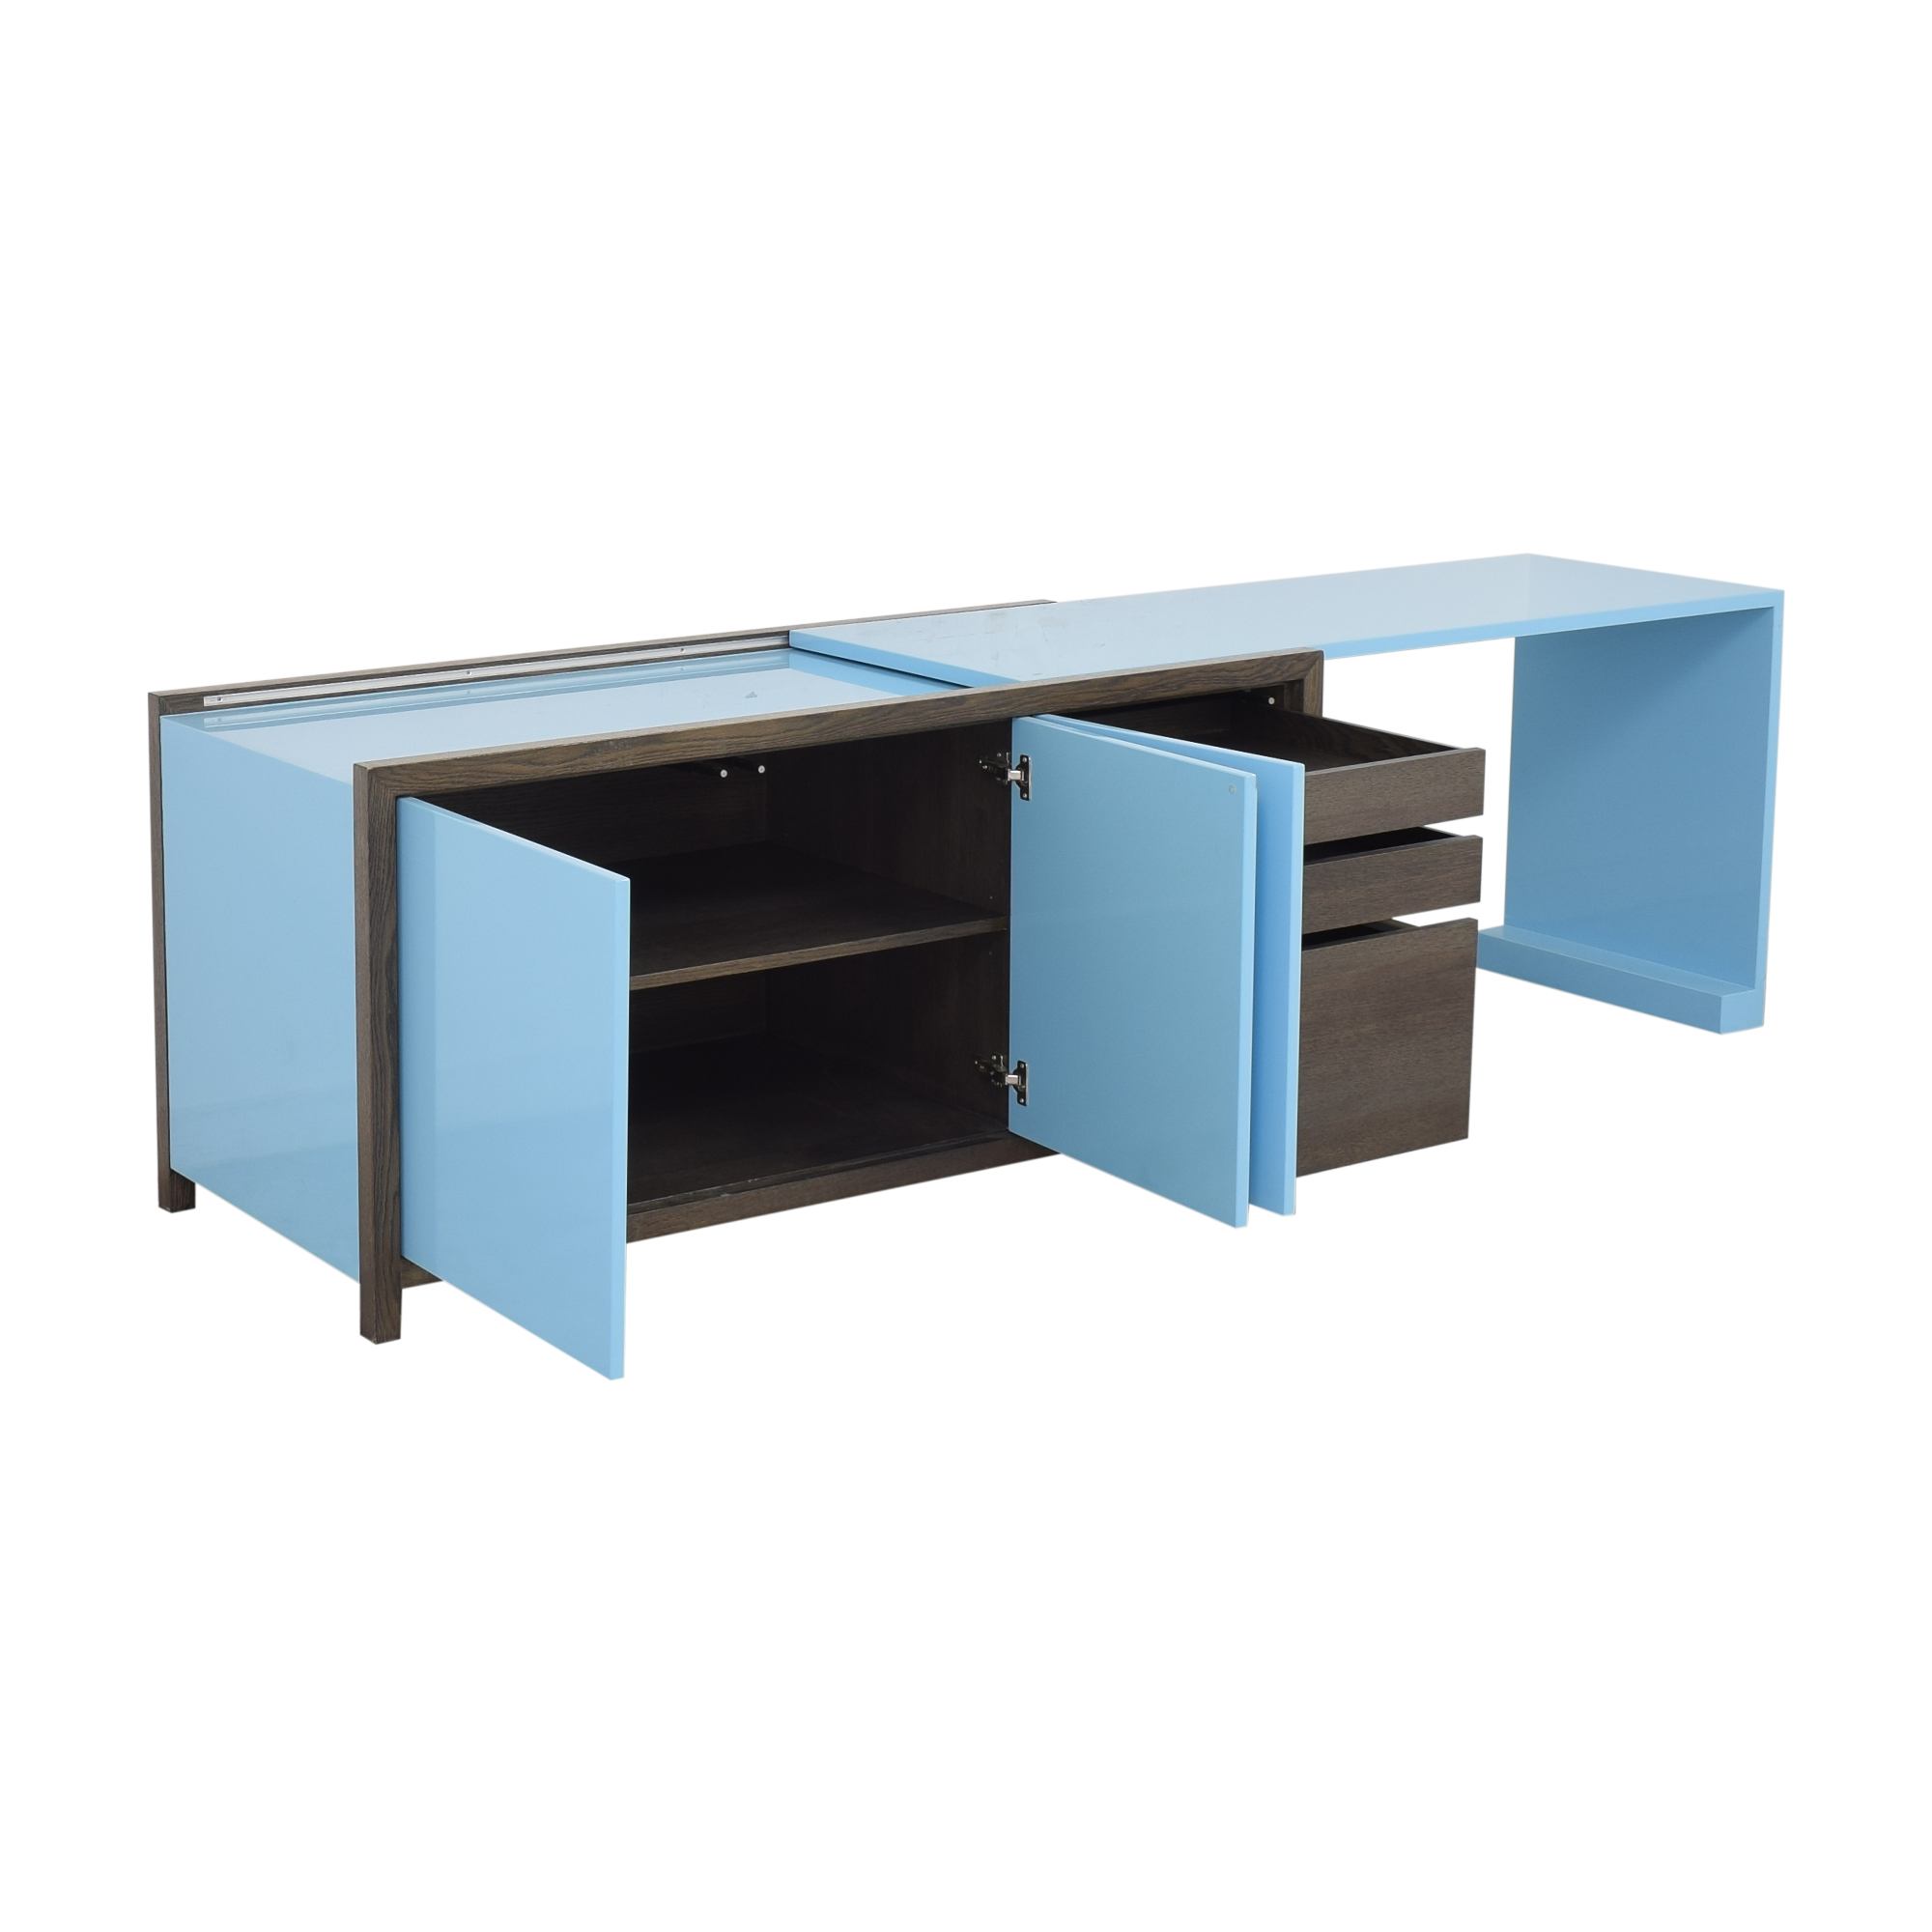 Dune Dune Lemans Sideboard with Extendable Desk Storage